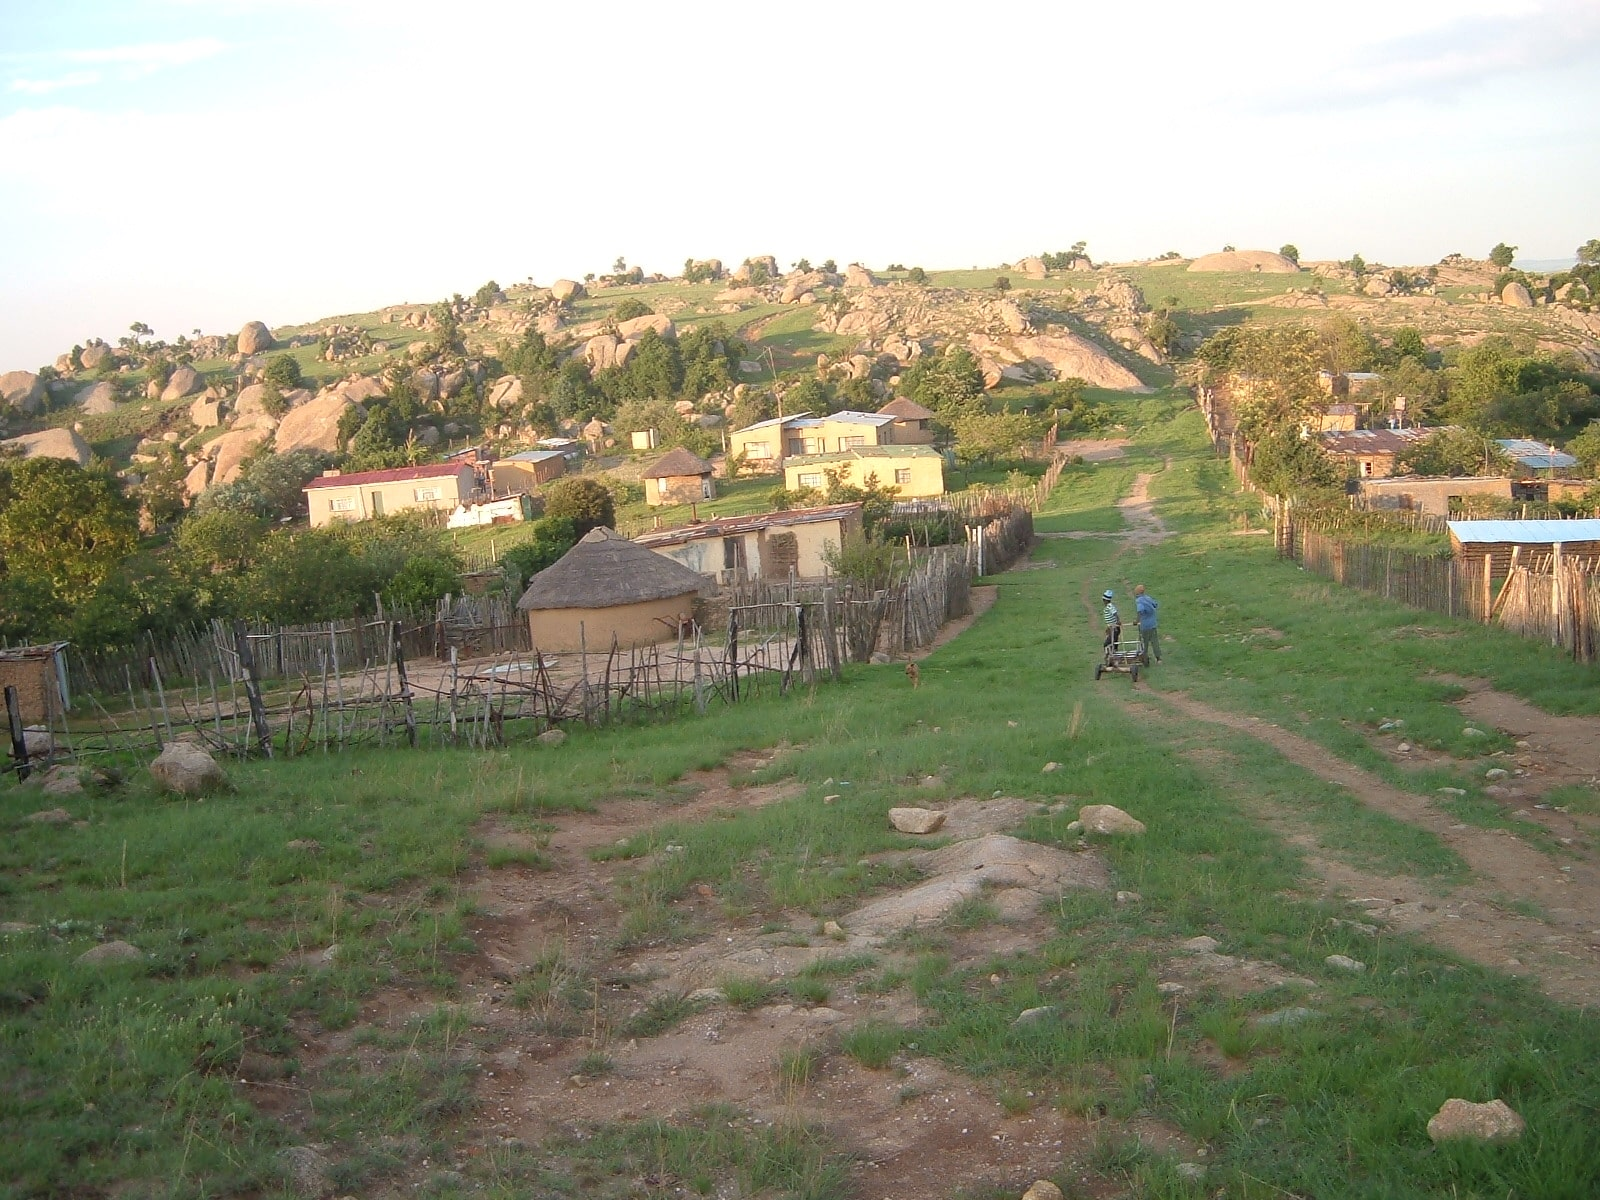 Diepdale, a village in Mpumalanga, South Africa.